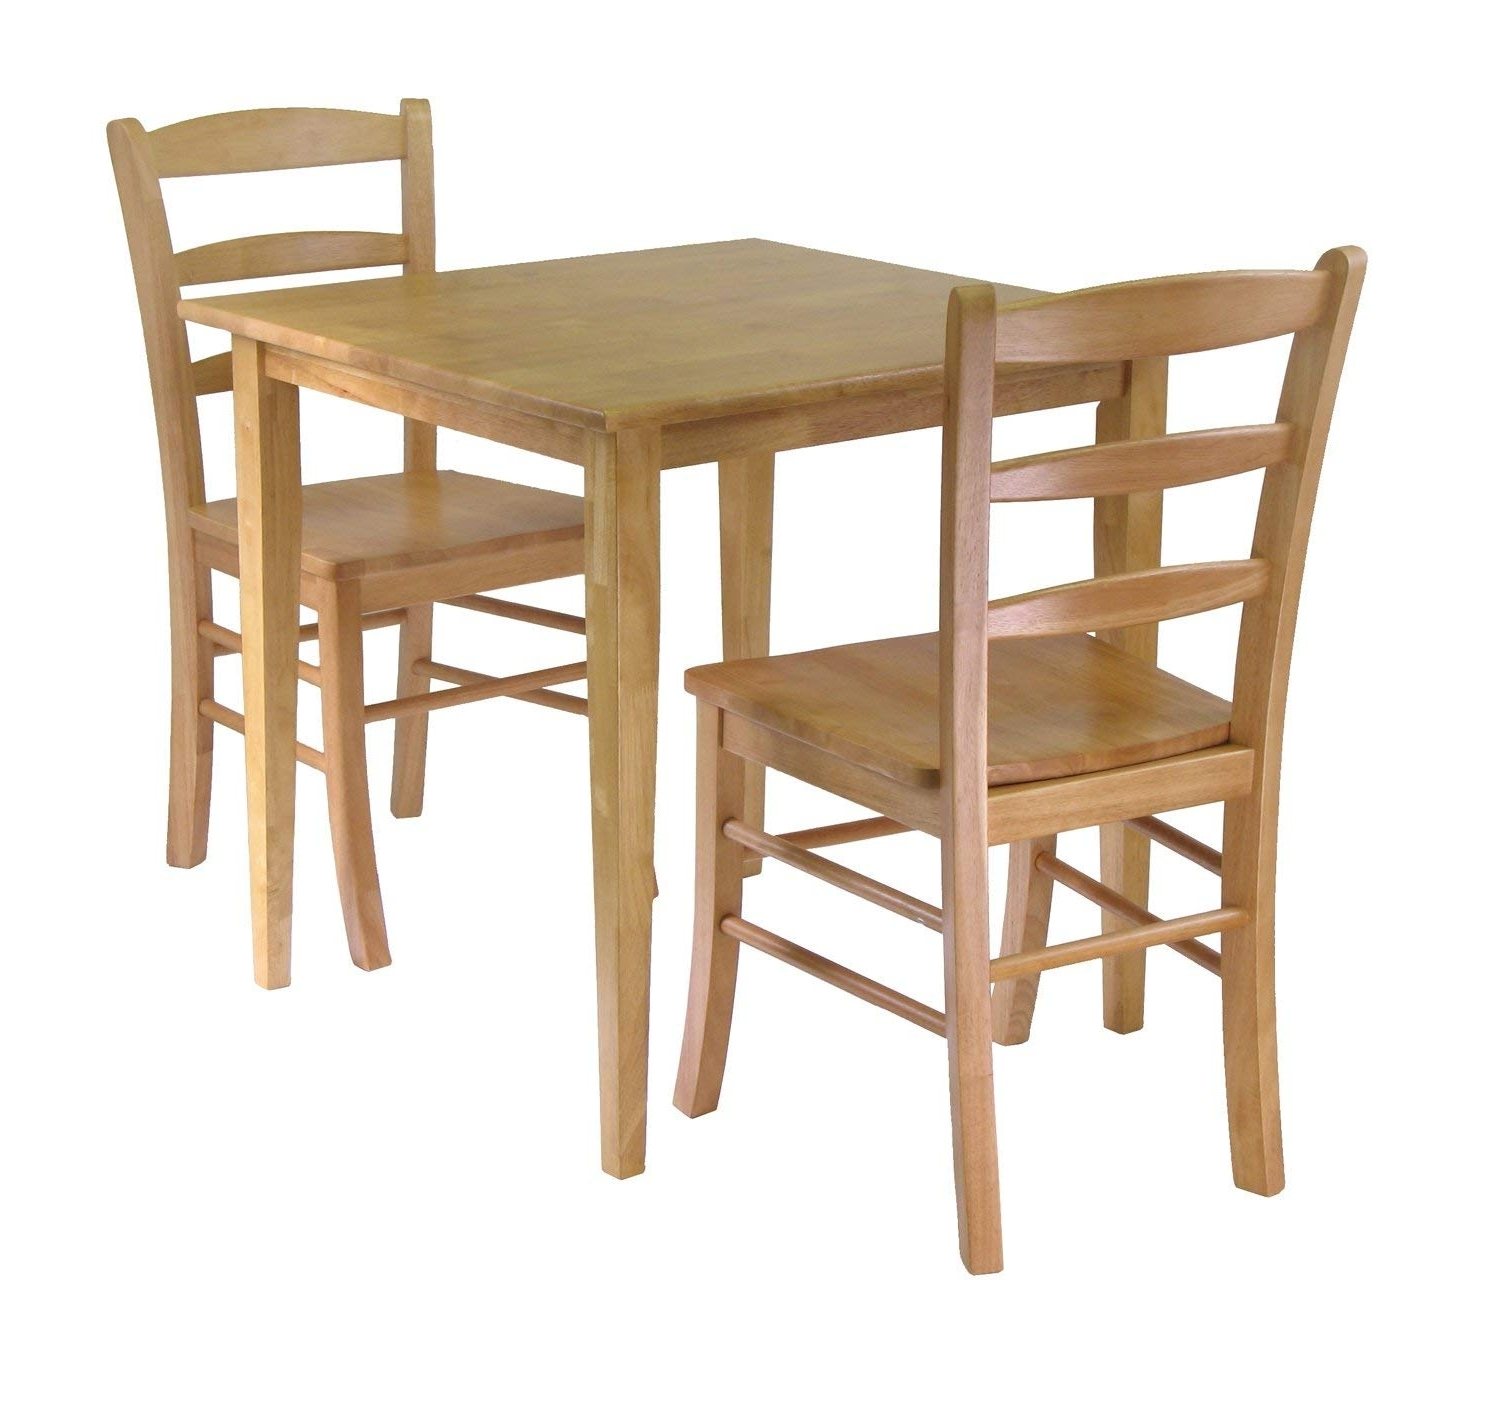 Two Person Dining Tables In 2018 Amazon – Winsome Groveland Square Dining Table With 2 Chairs,  (View 18 of 25)